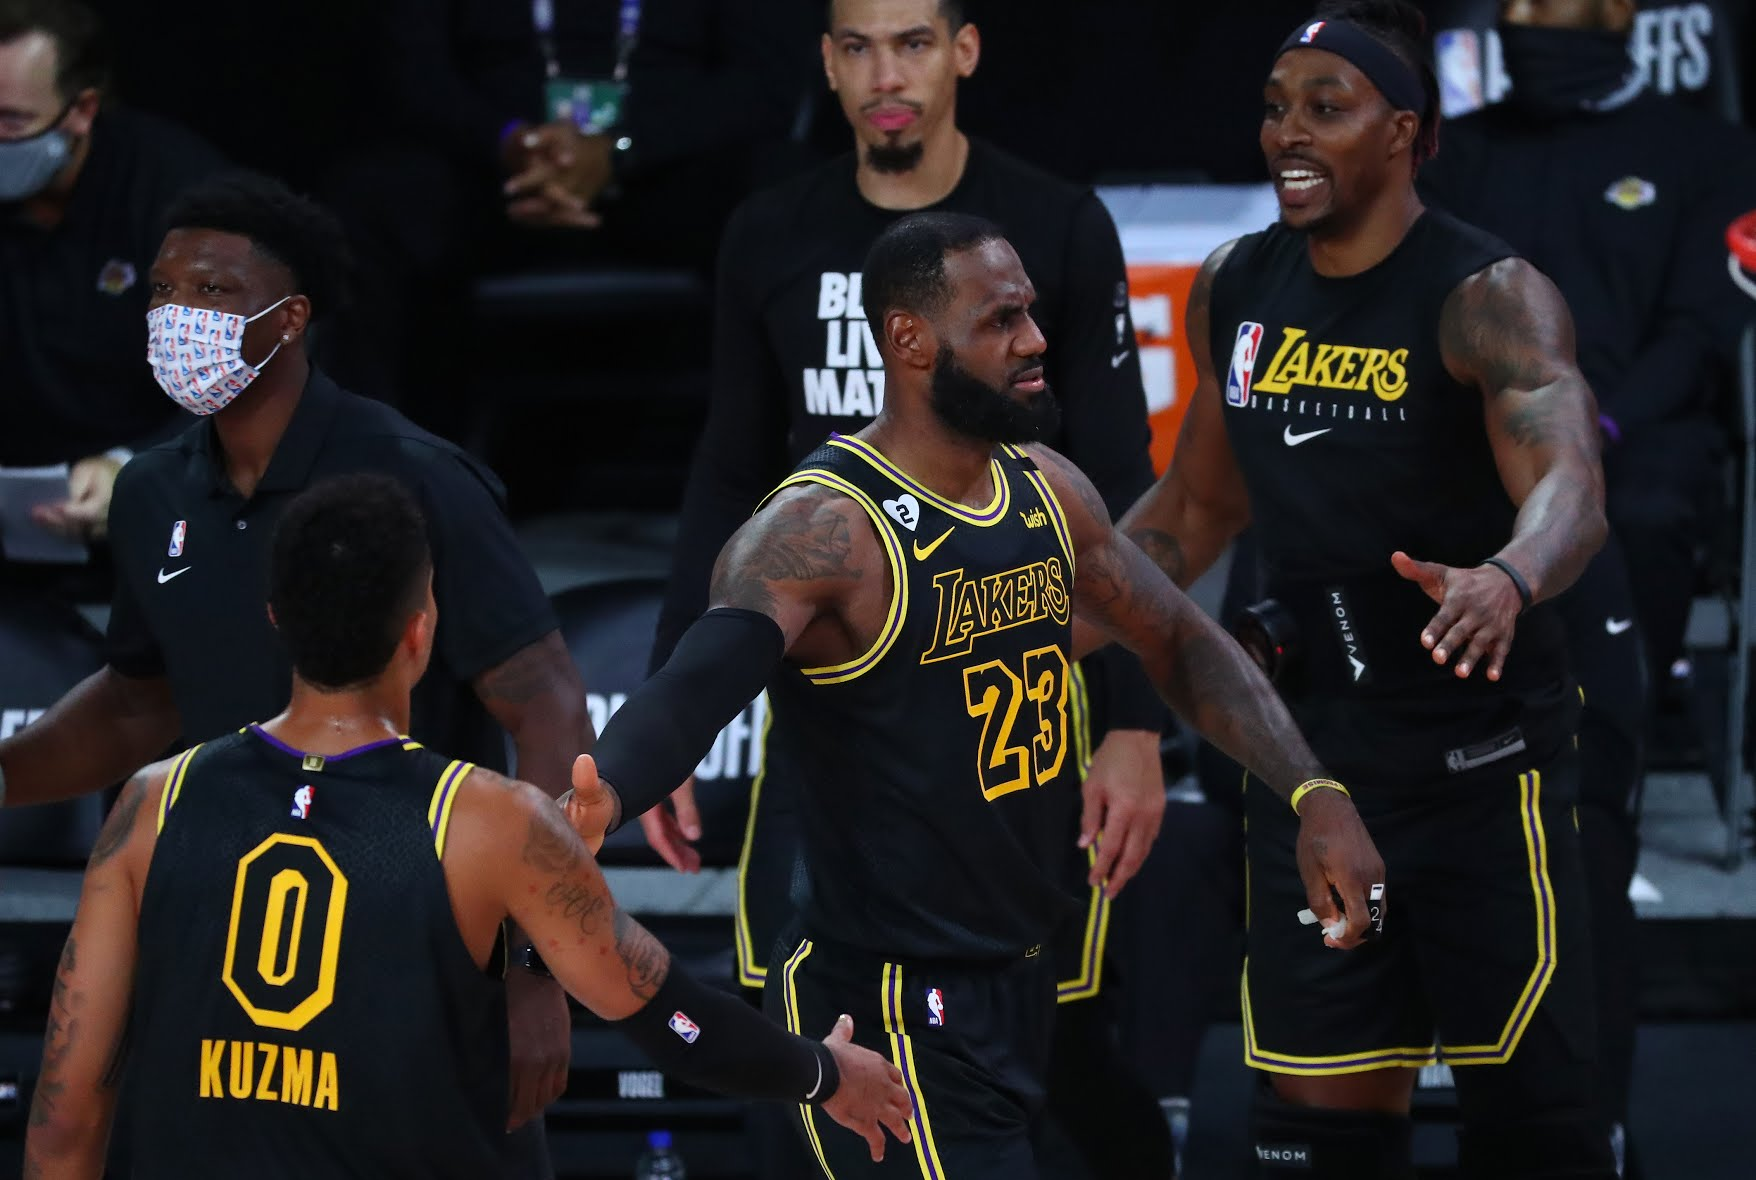 Lakers Fade Blazers To Black With Mamba Mentality